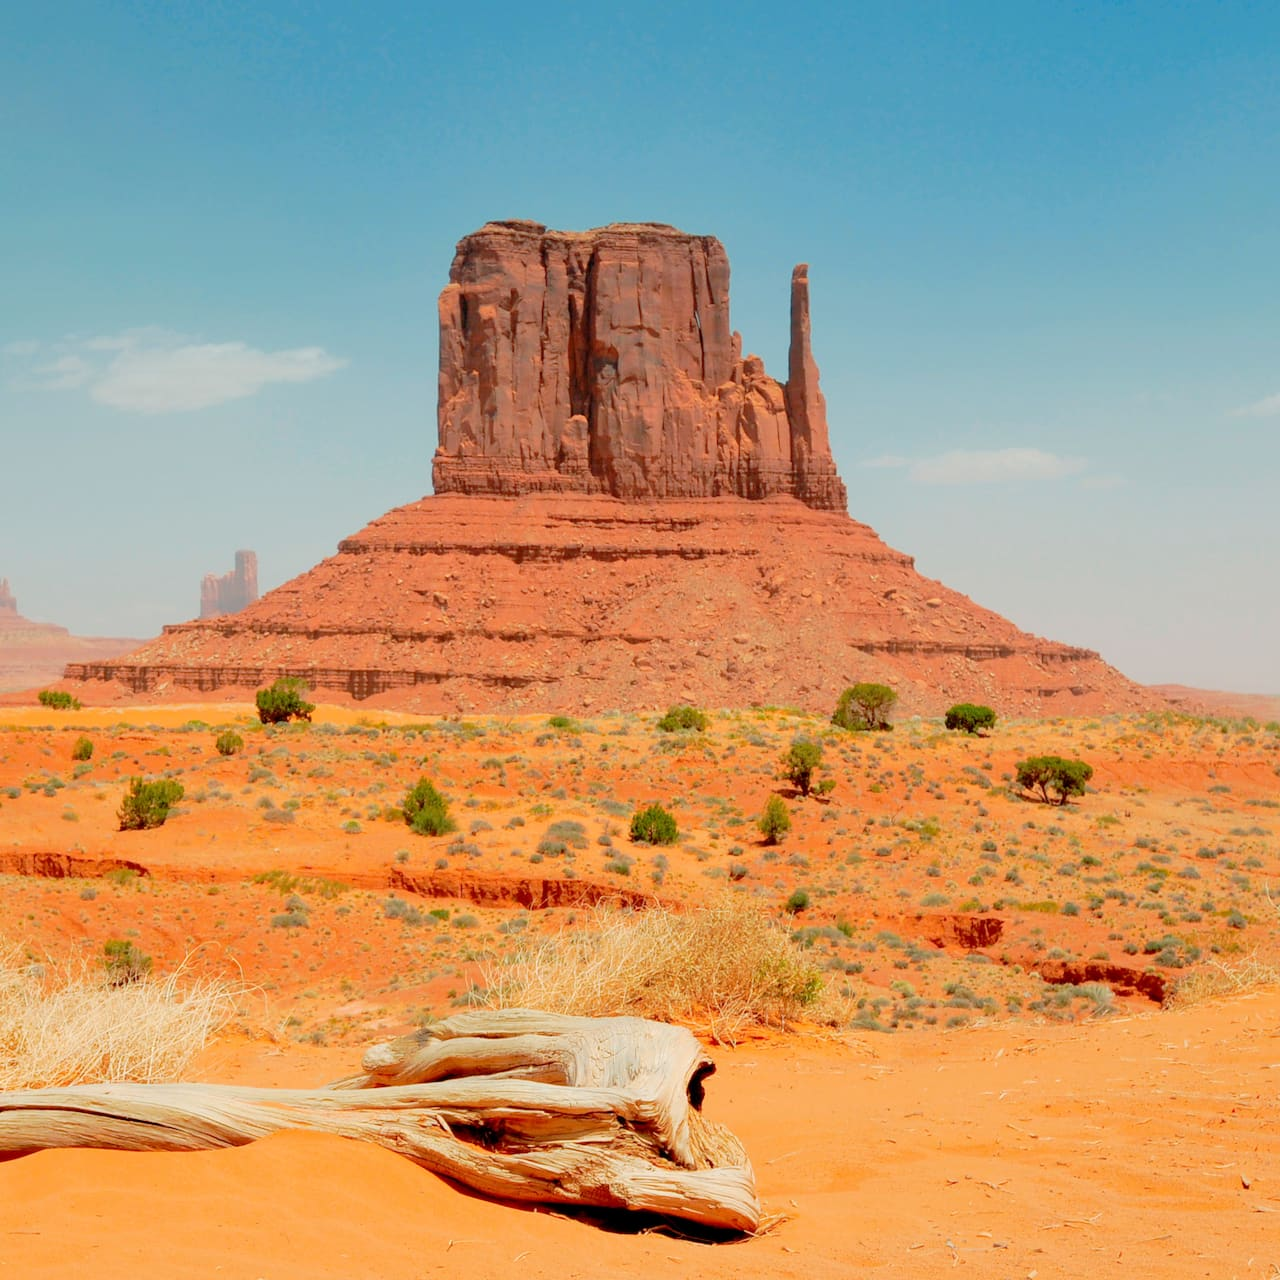 Buttes and rock formations in Monument Valley